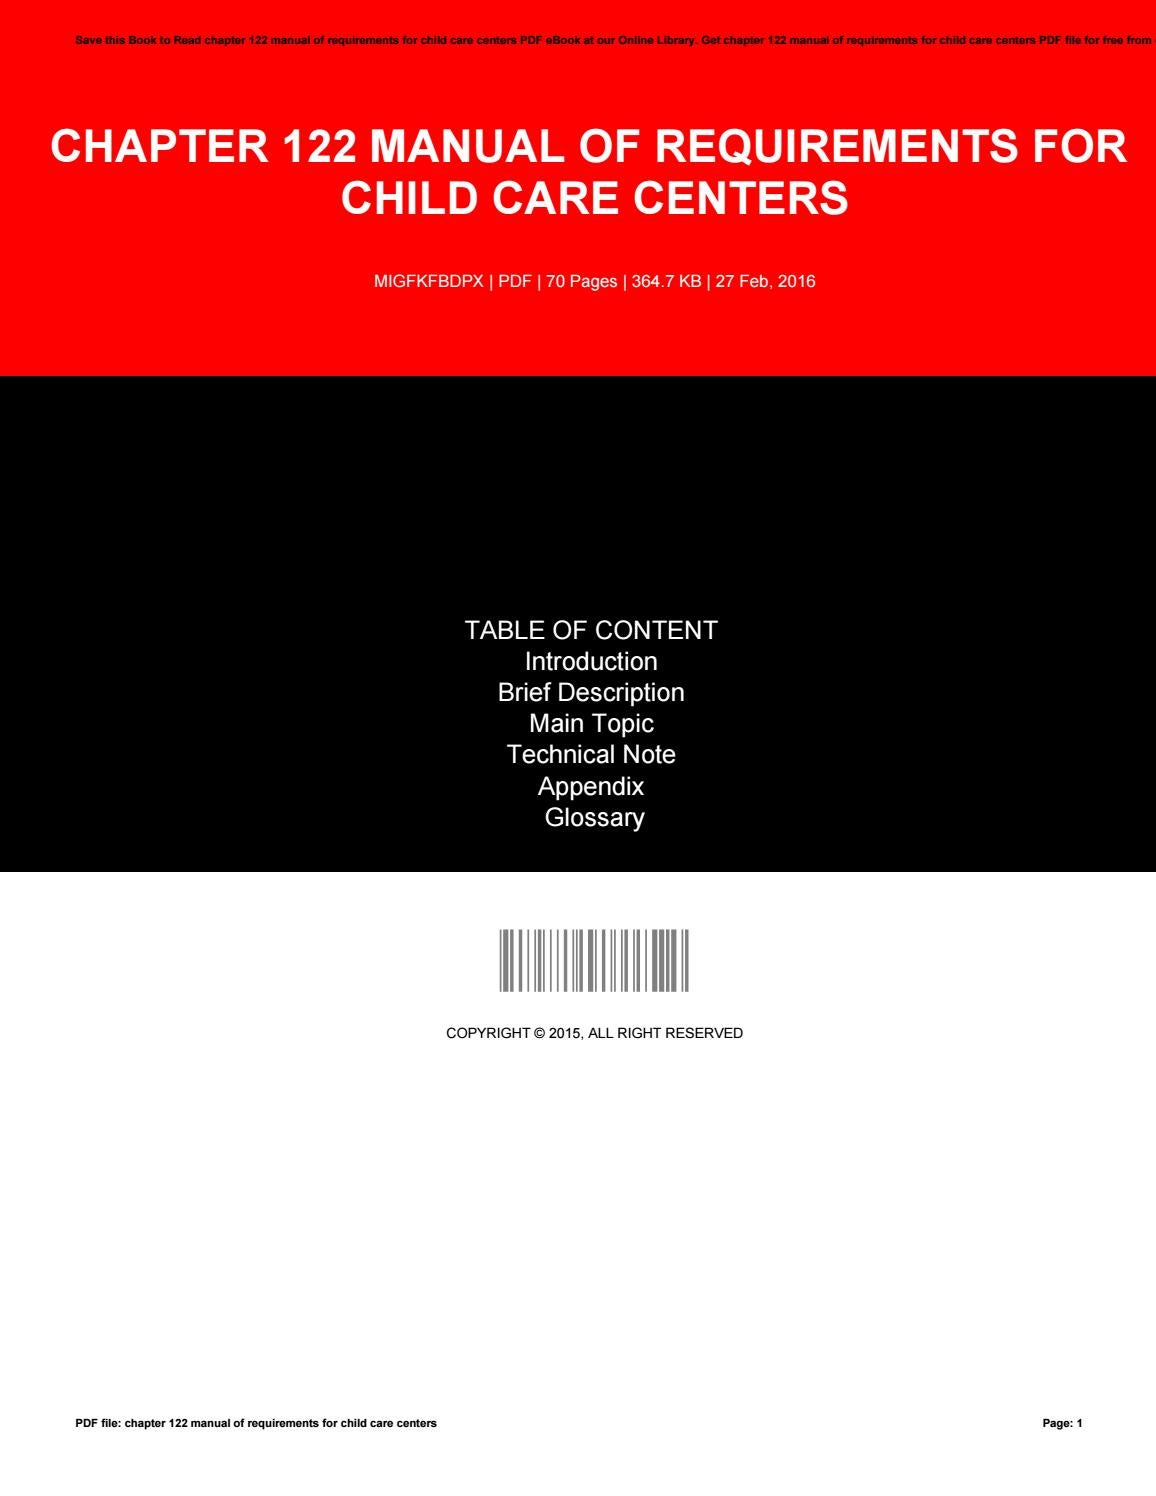 Chapter 122 Manual Of Requirements For Child Care Centers By